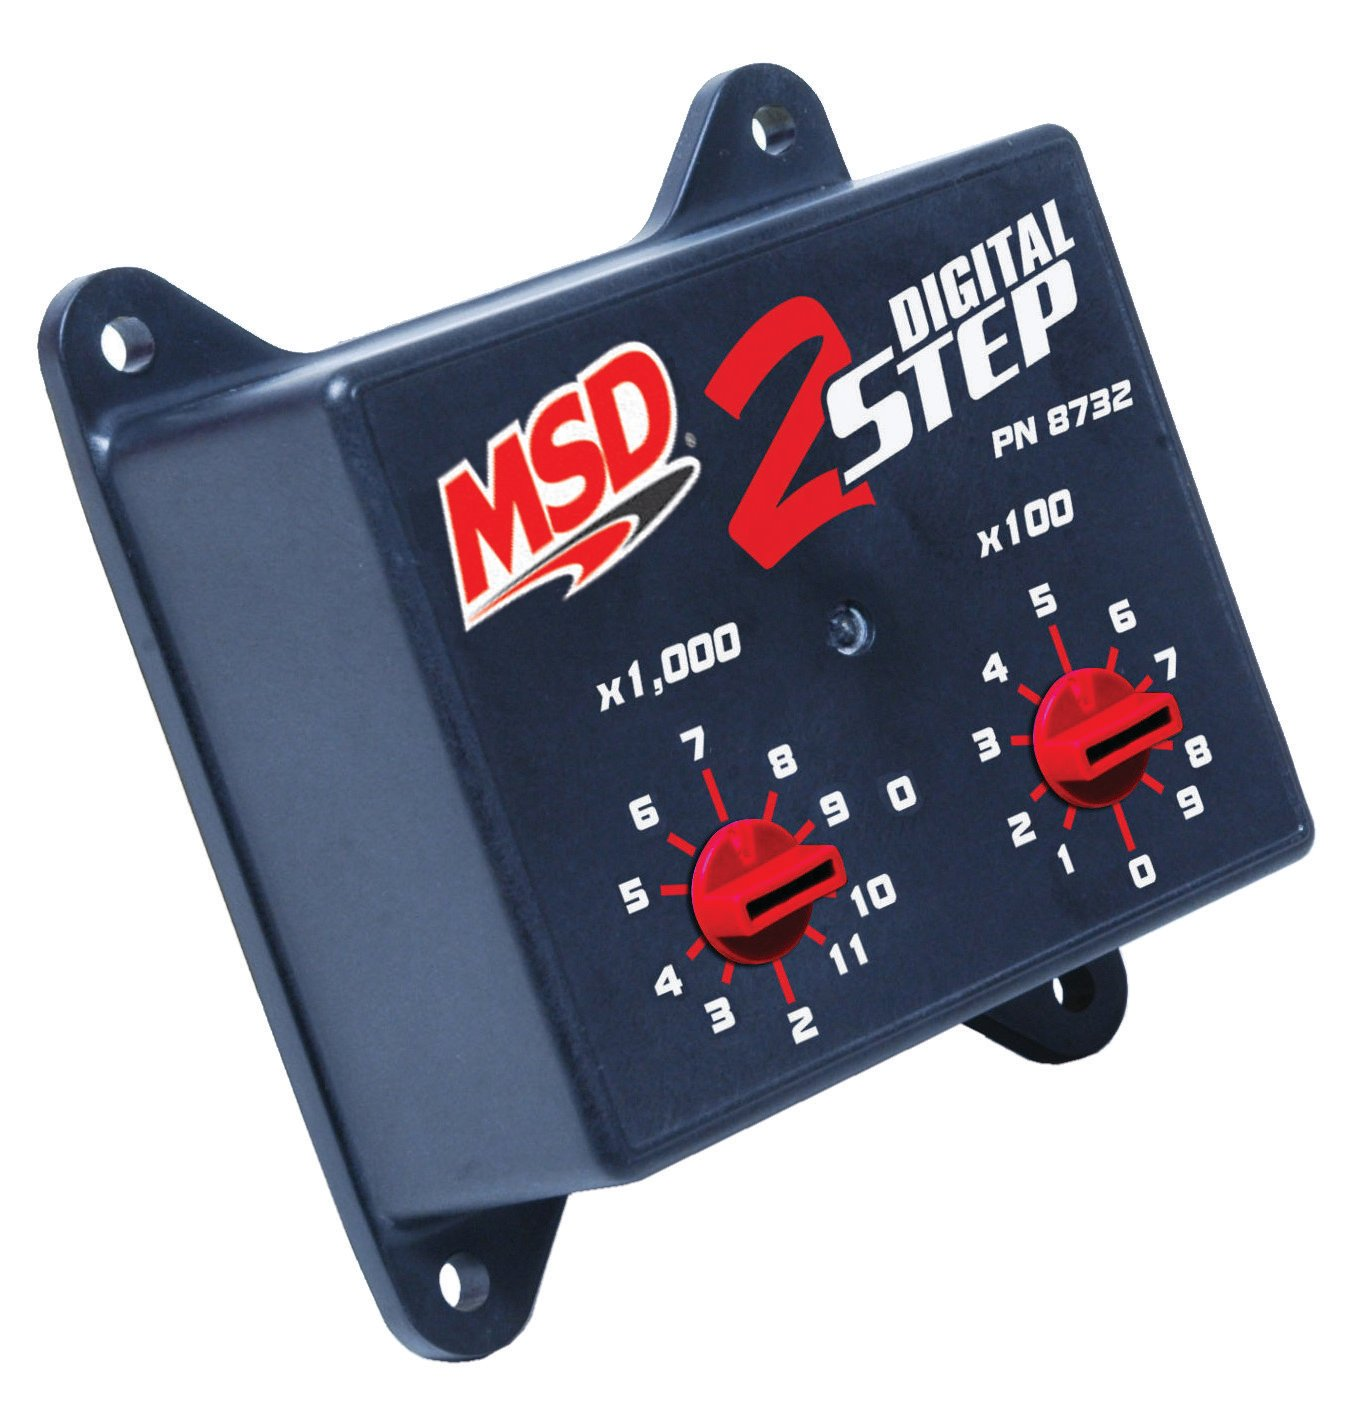 msd 8732 2 step rev control for digital 6al pn 6425 or 64253 only rh holley com msd digital 6 plus 2 step wiring diagram 6401 MSD Ignition Wiring Diagram Ford